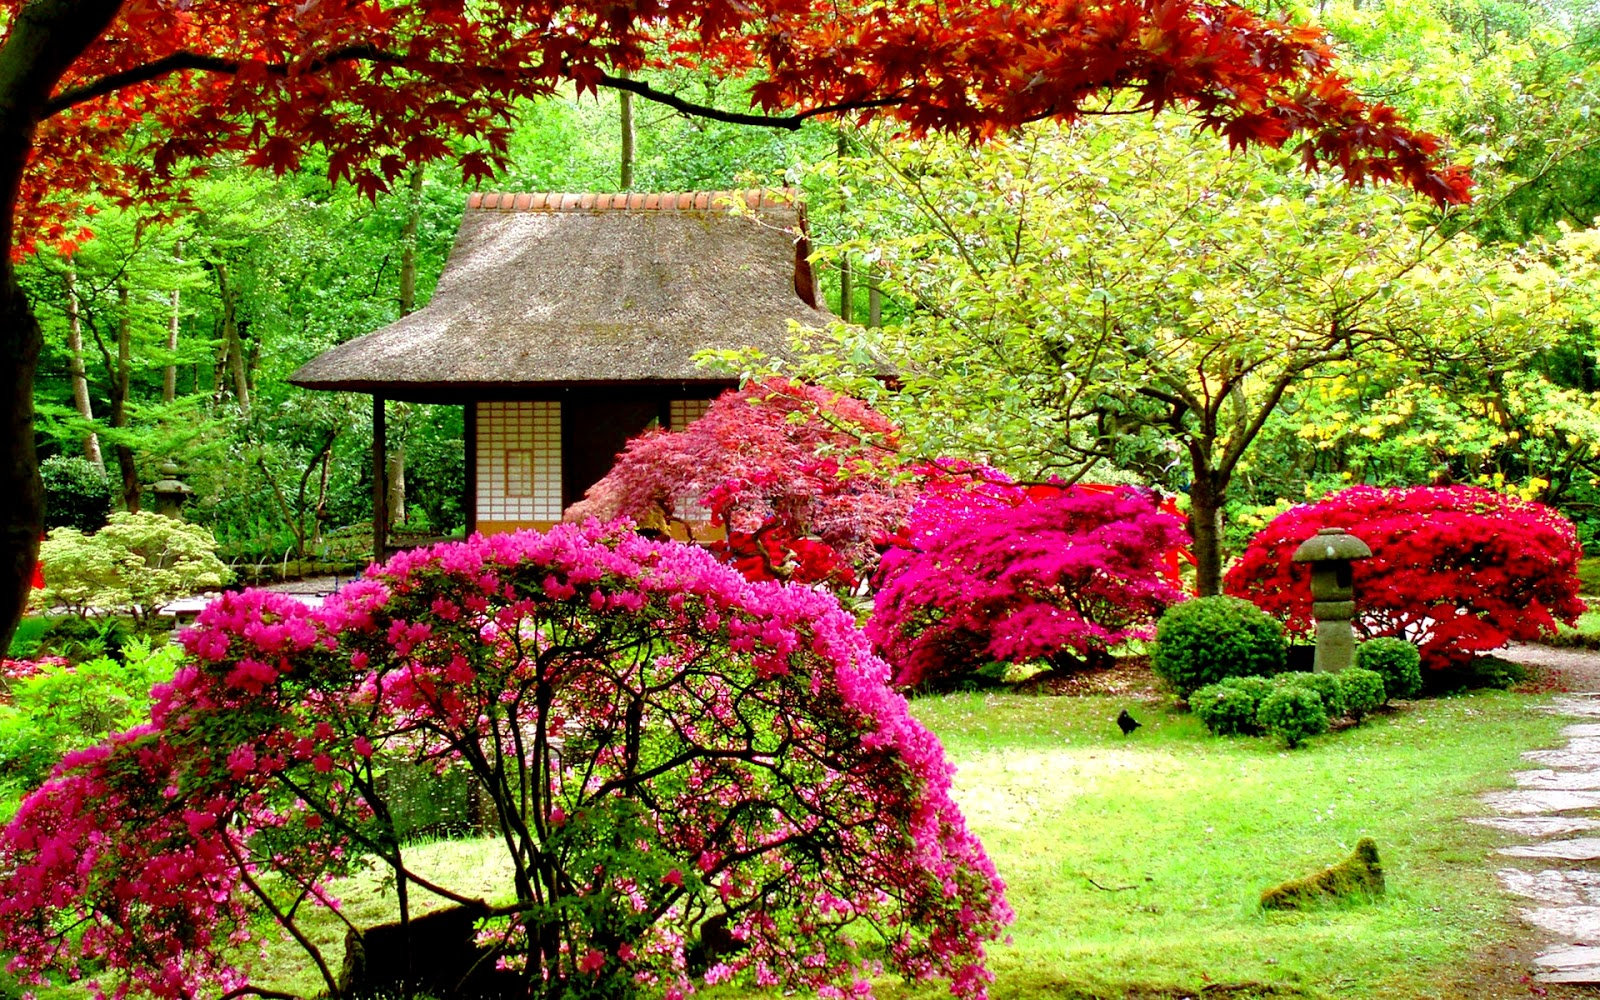 Gardens hd wallpapers Beautiful home garden images